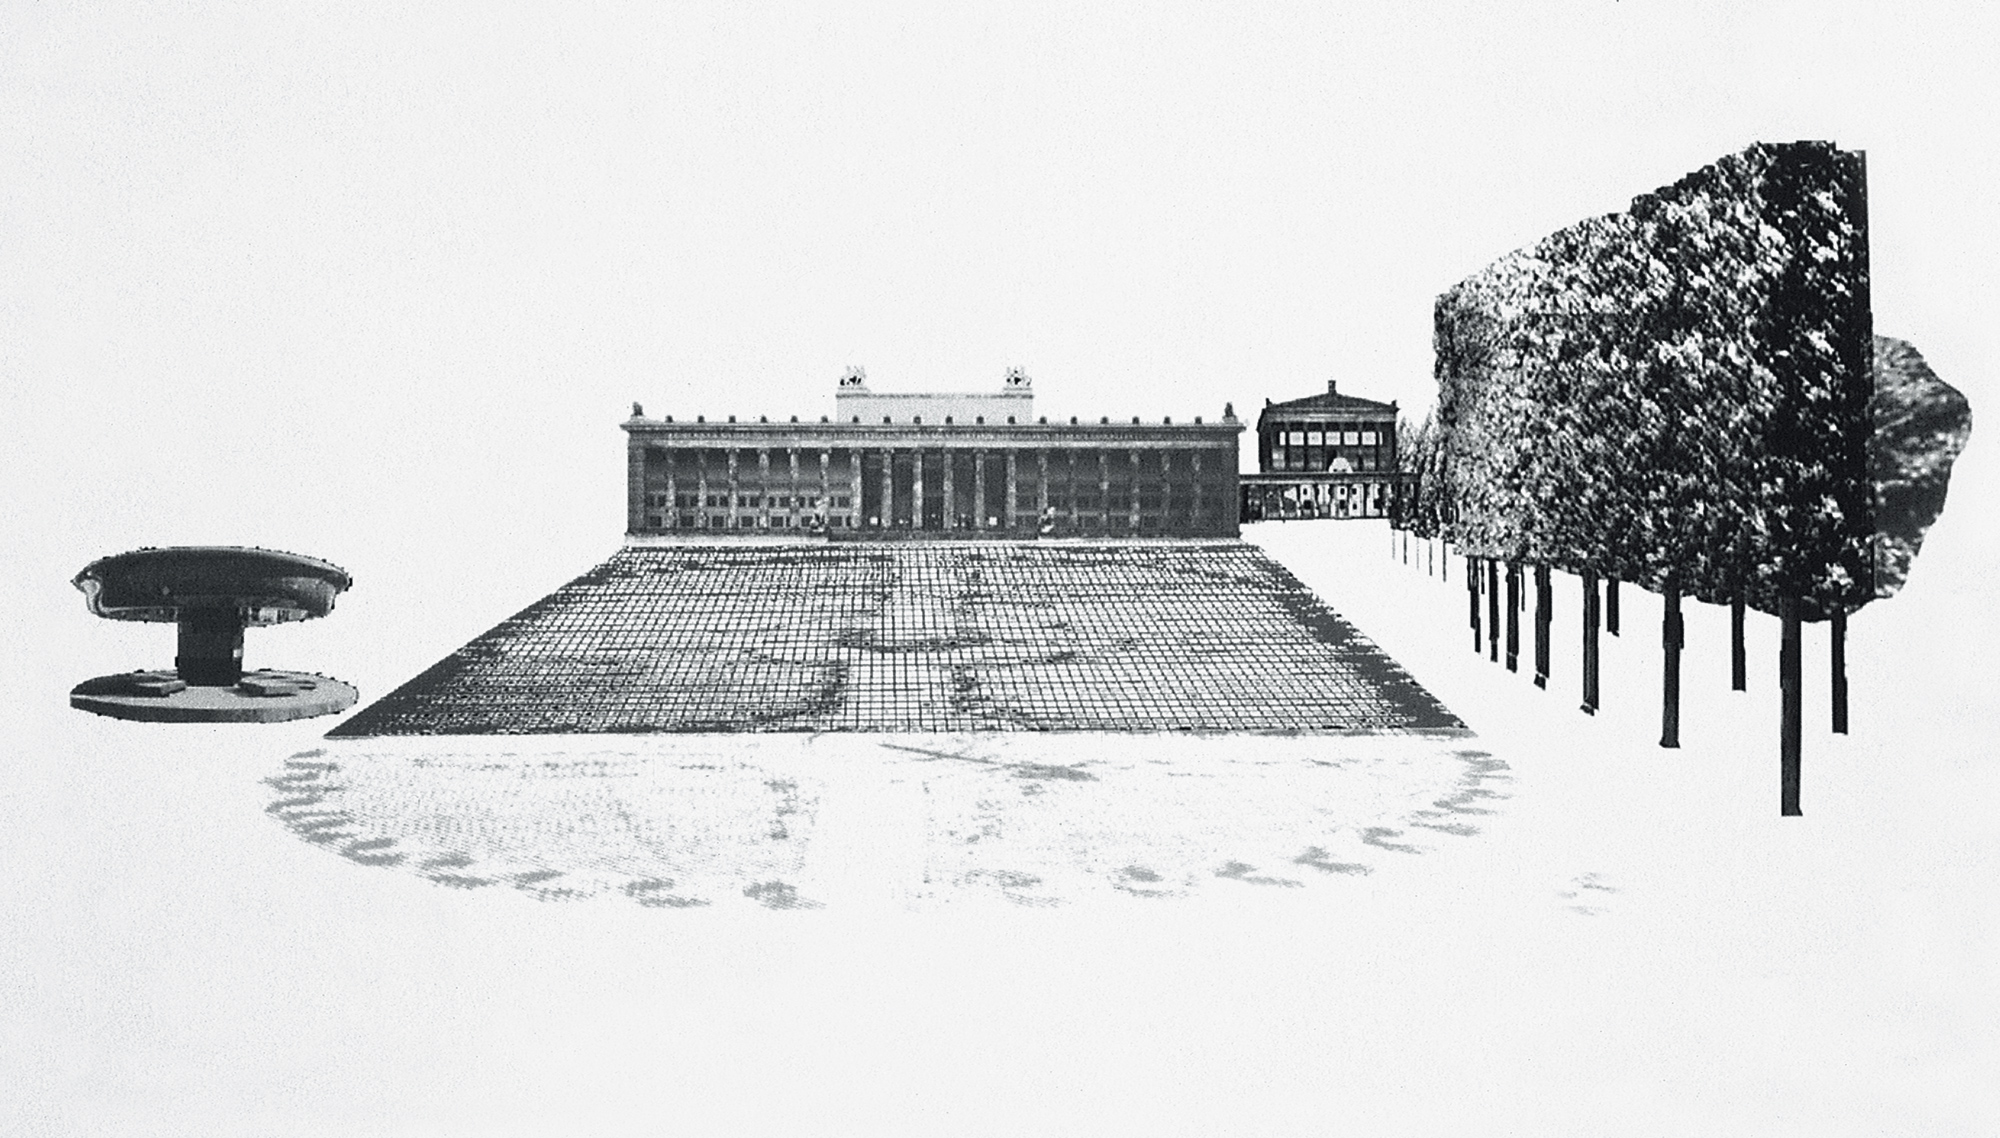 Design of the Lustgarten in Berlin